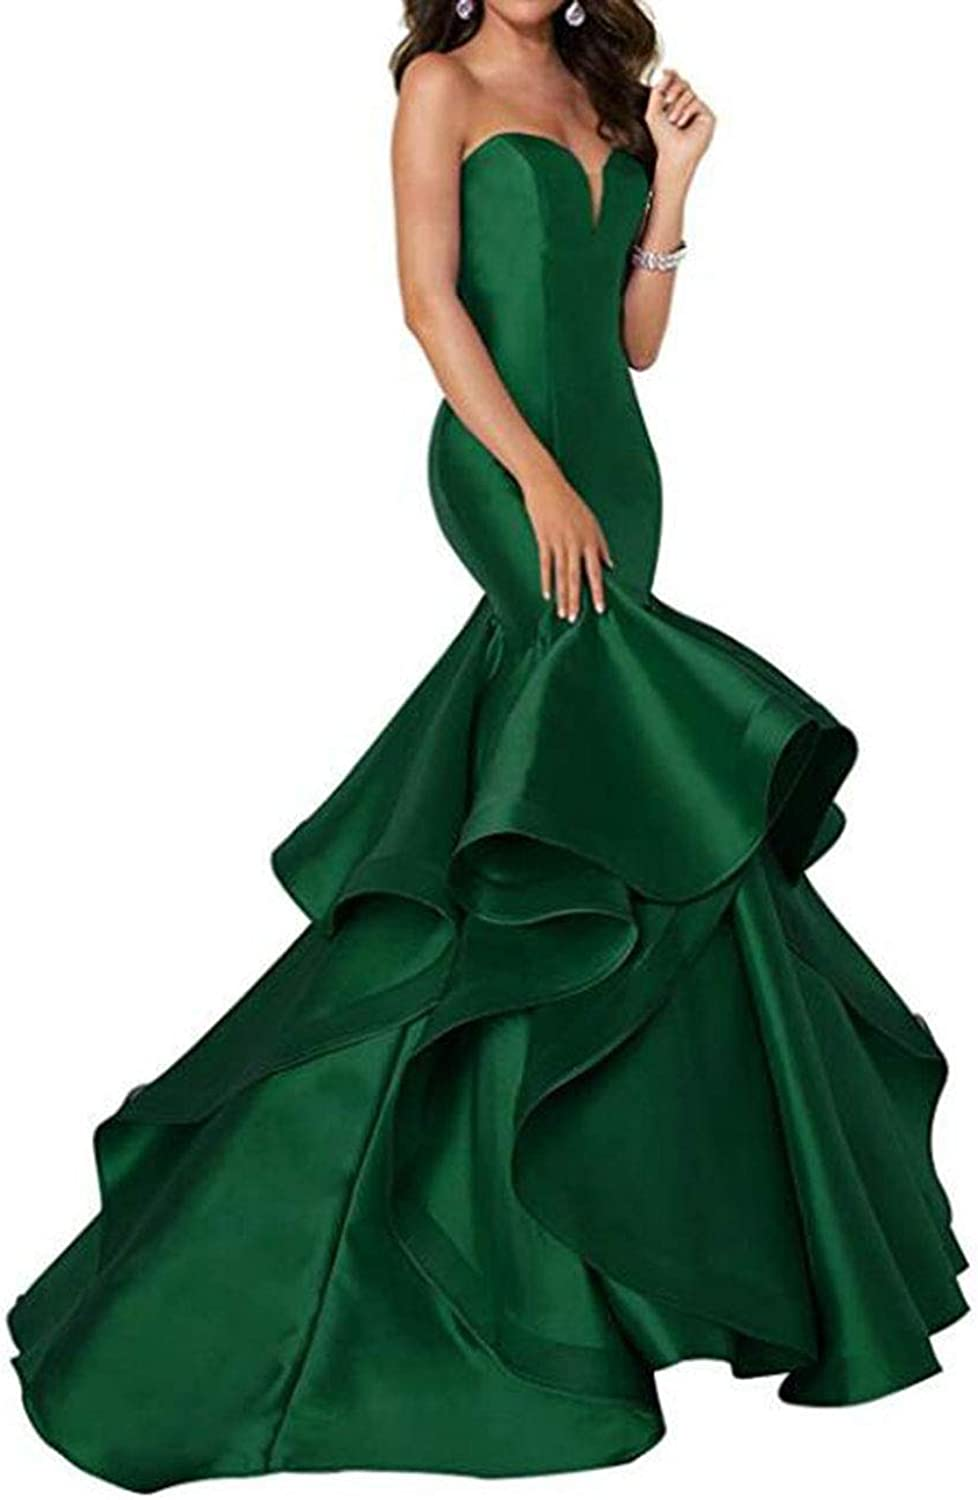 Alilith.Z Sexy Sweetheart Prom Dresses Mermaid Tired Satin Train Formal Evening Dresses Party Gowns for Women 2019